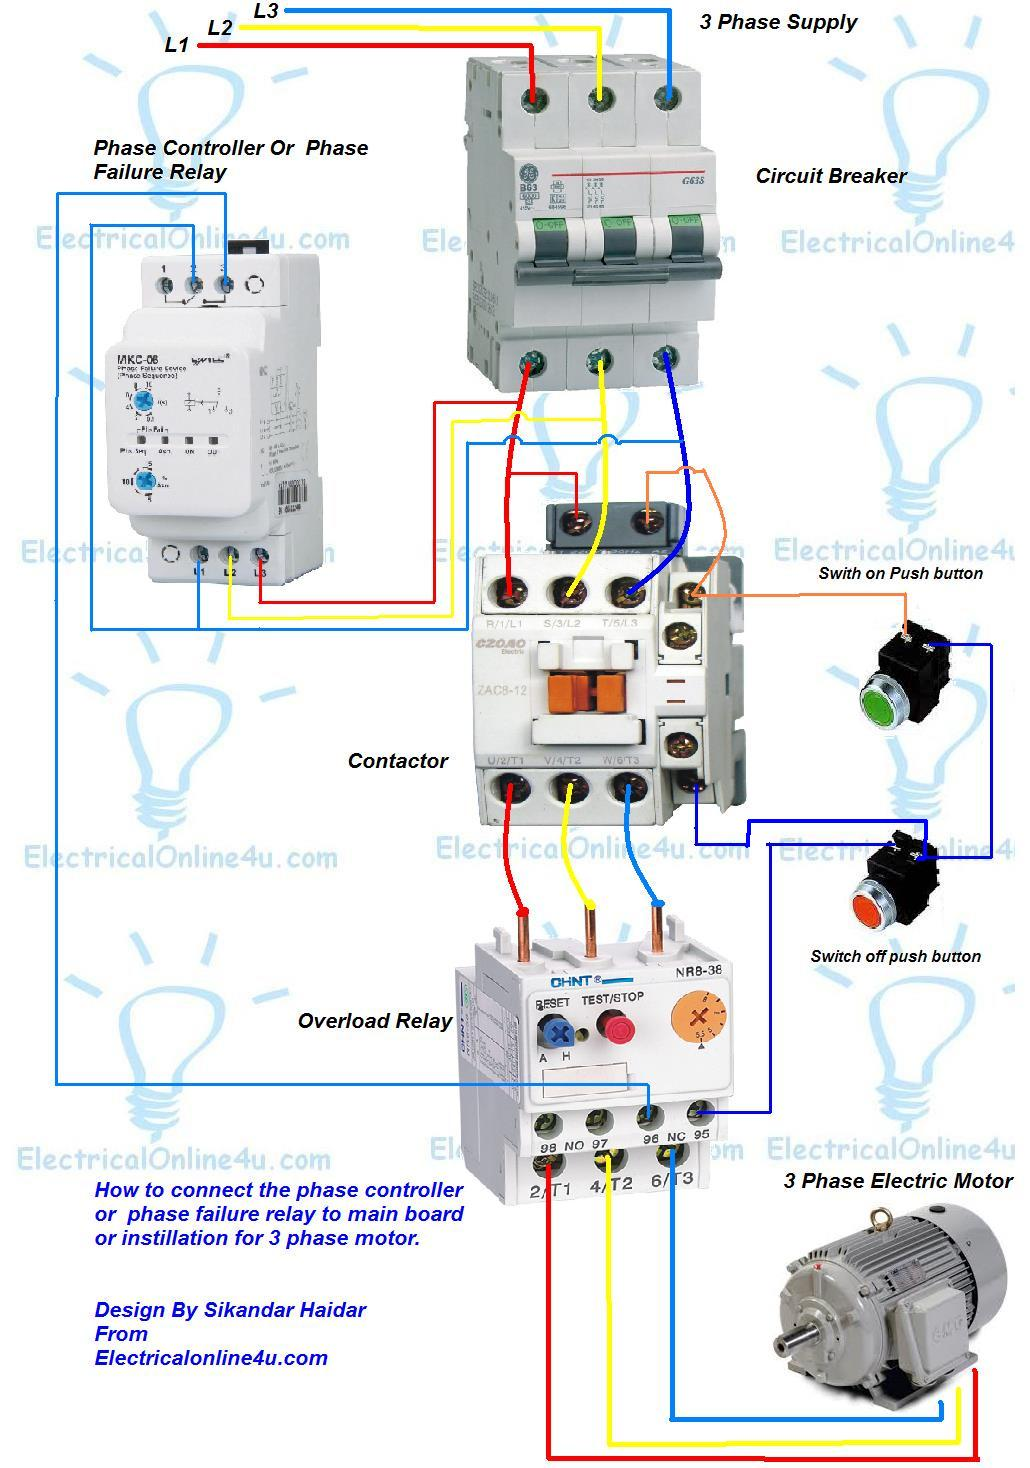 Phase%2Bfailure%2Brelay%2B %2Bphase%2Bcontroller%2Binstilaion%2Bin%2B3%2Bphase%2BMain%2Bboard%2Bor%2Bfor%2B3%2Bphase%2Bmotor phase controller wiring phase failure relay diagram electrical controller wire diagram for 3246e2 lift at mifinder.co